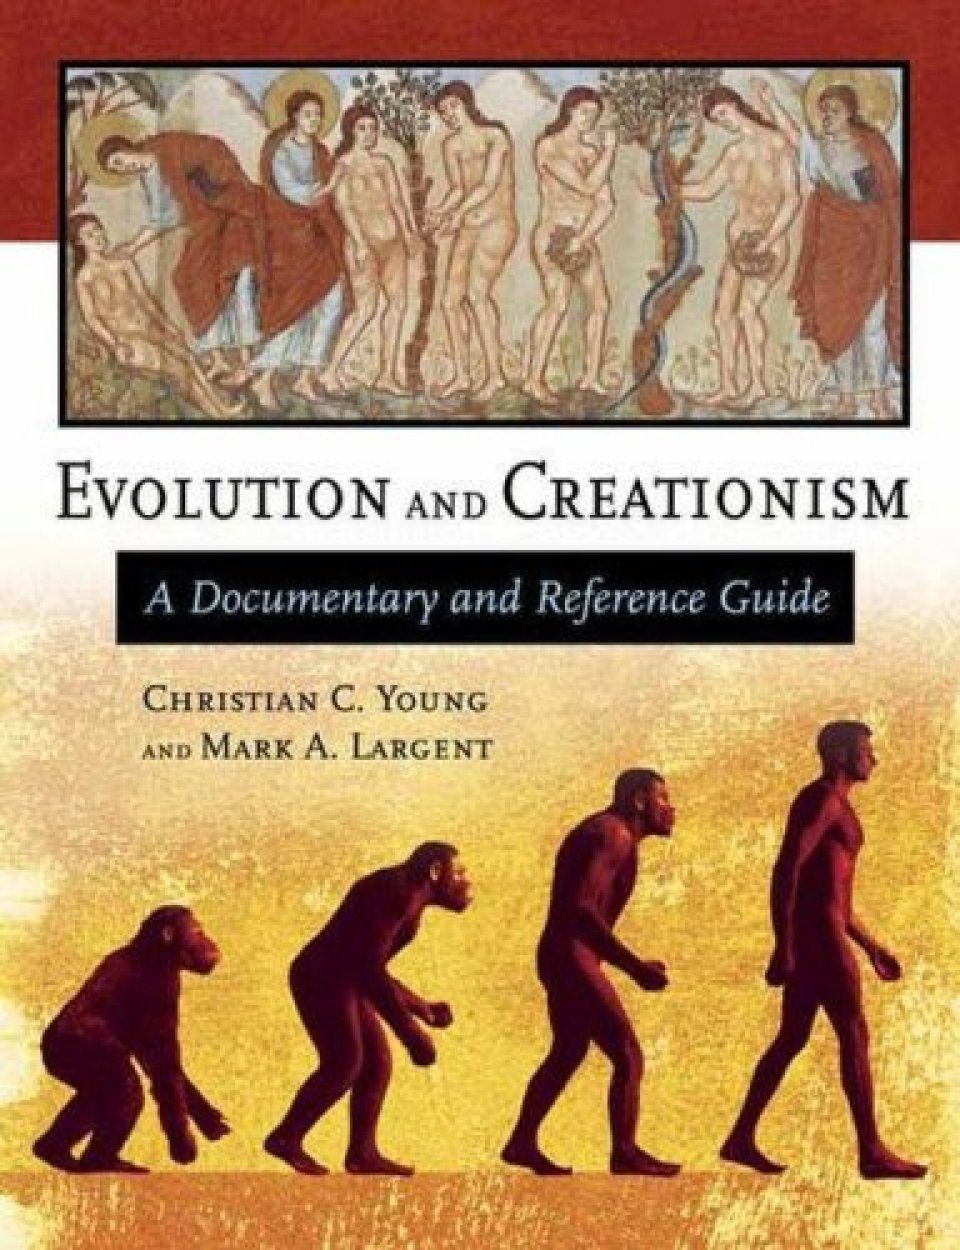 creation vs evolution outline roughdraft by sarah bandy creation vs evolution essay essaysforstudentcom